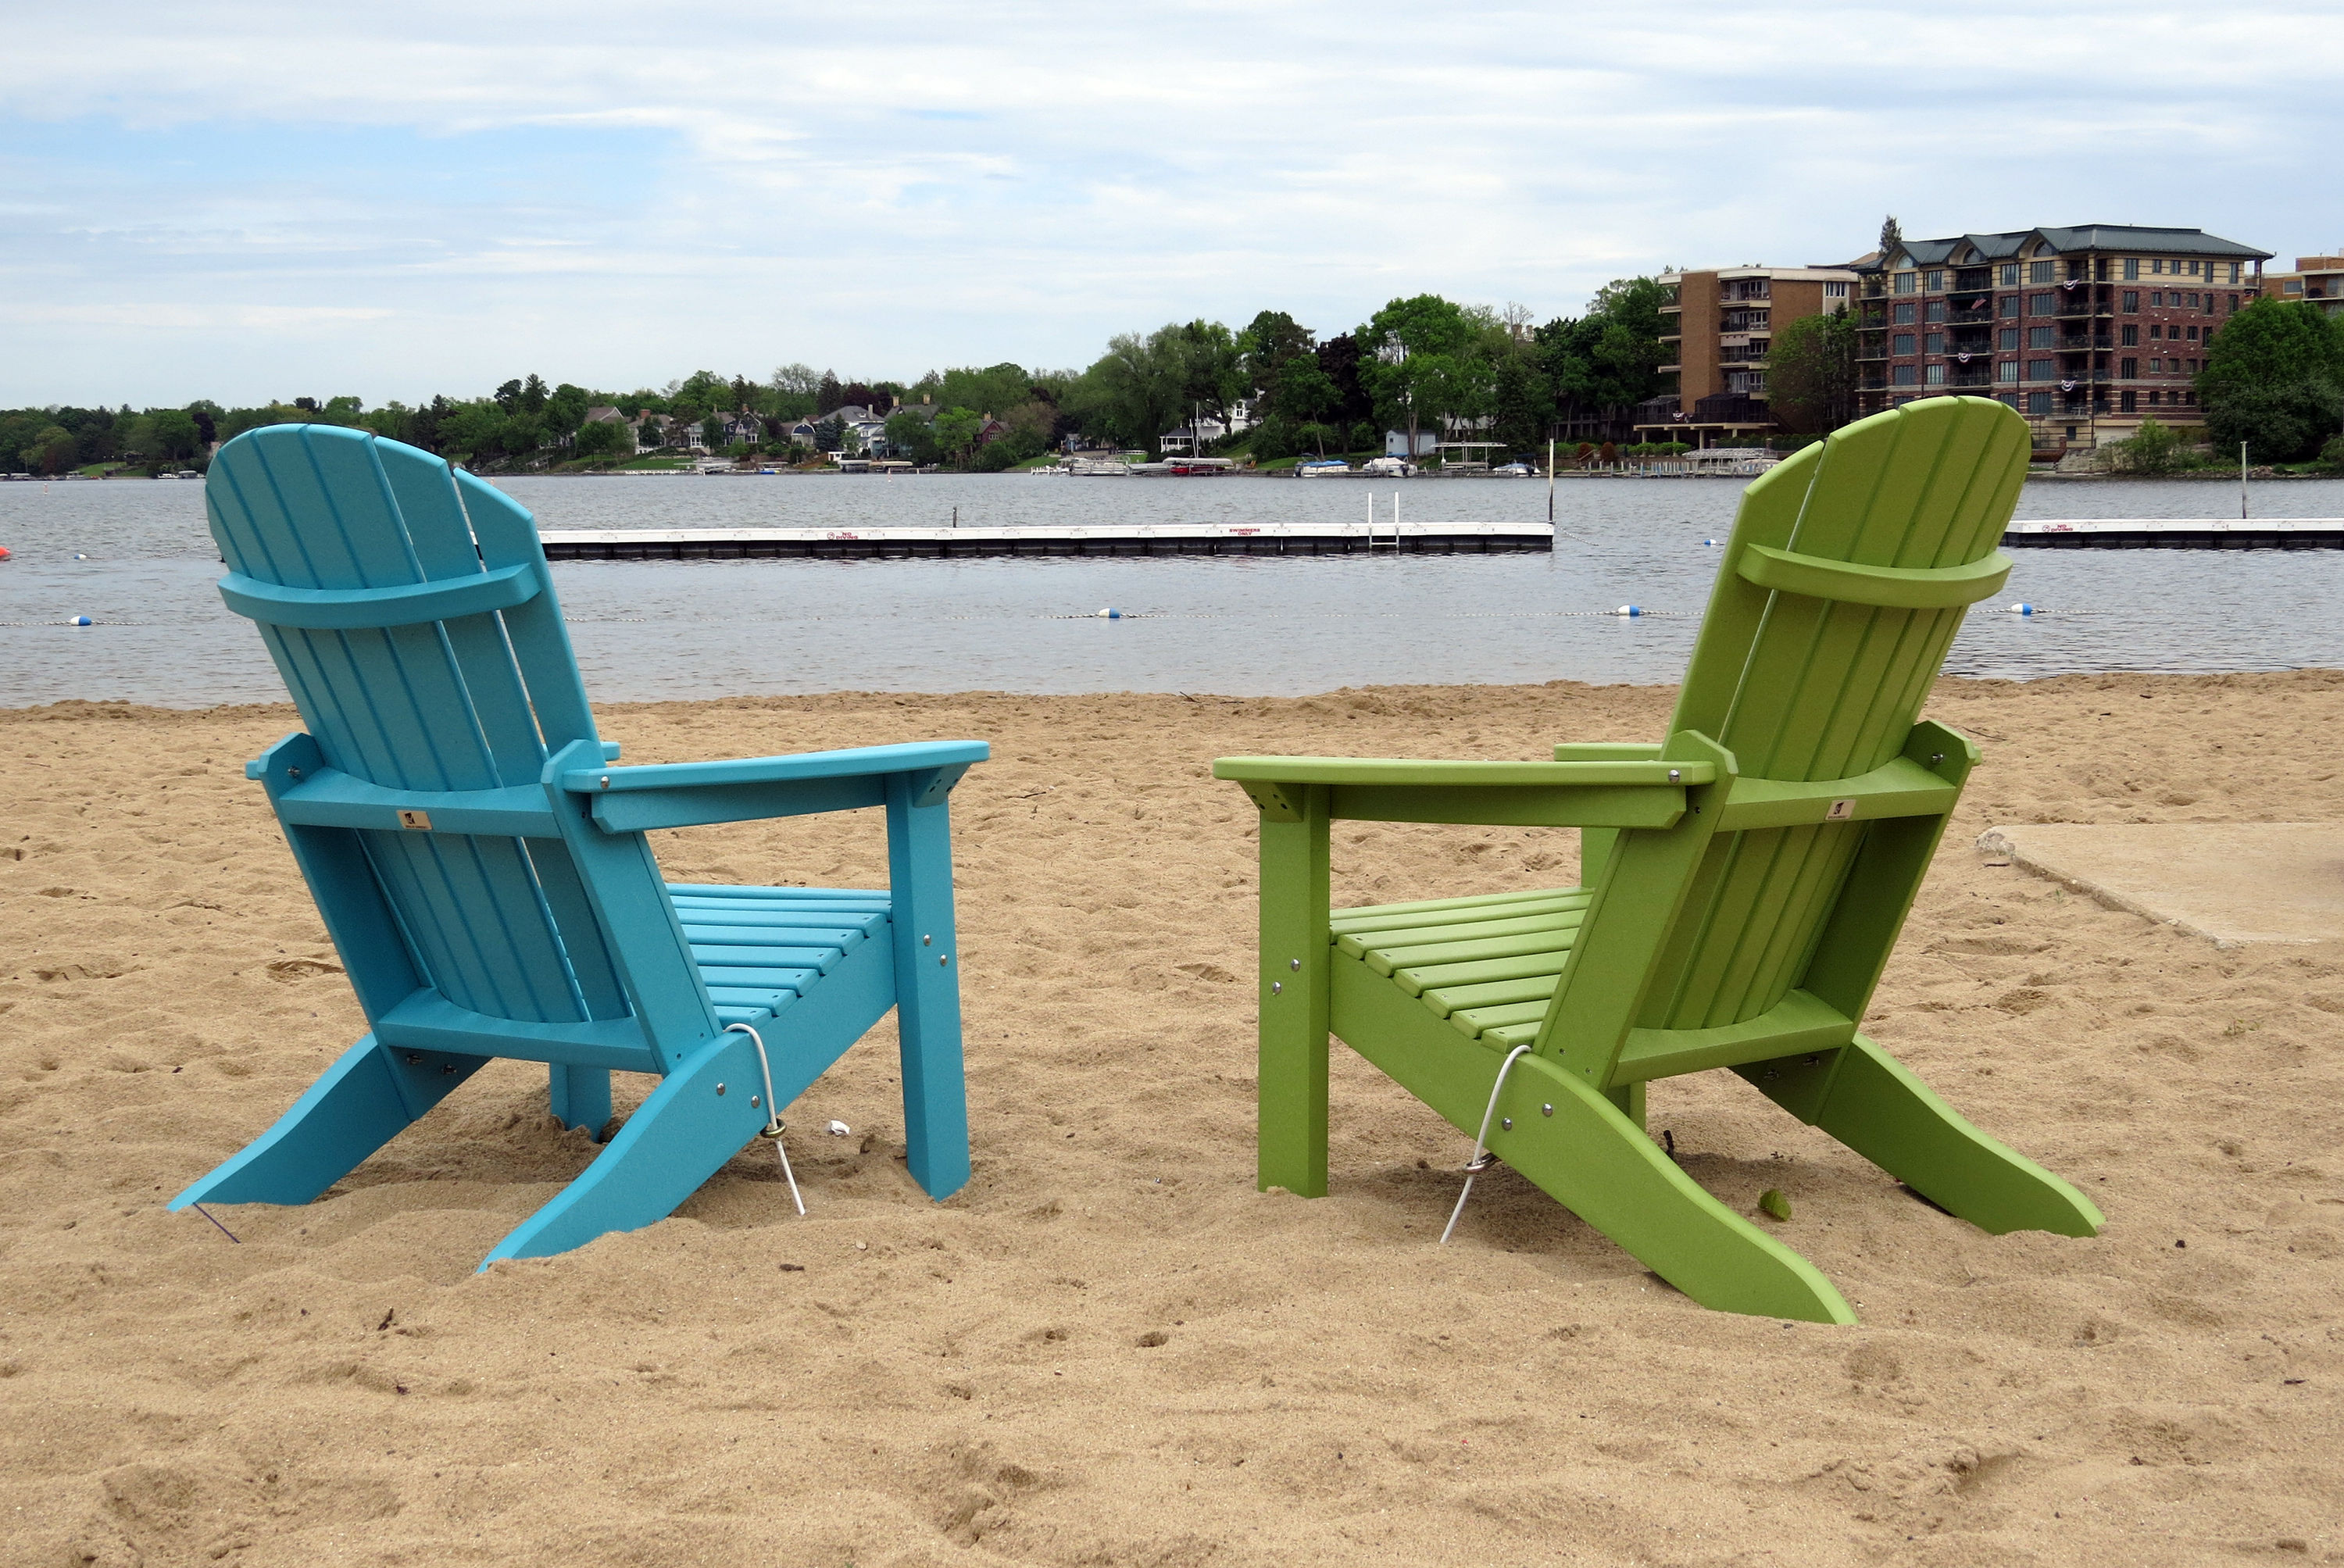 Adirondack Chairs at City Beach